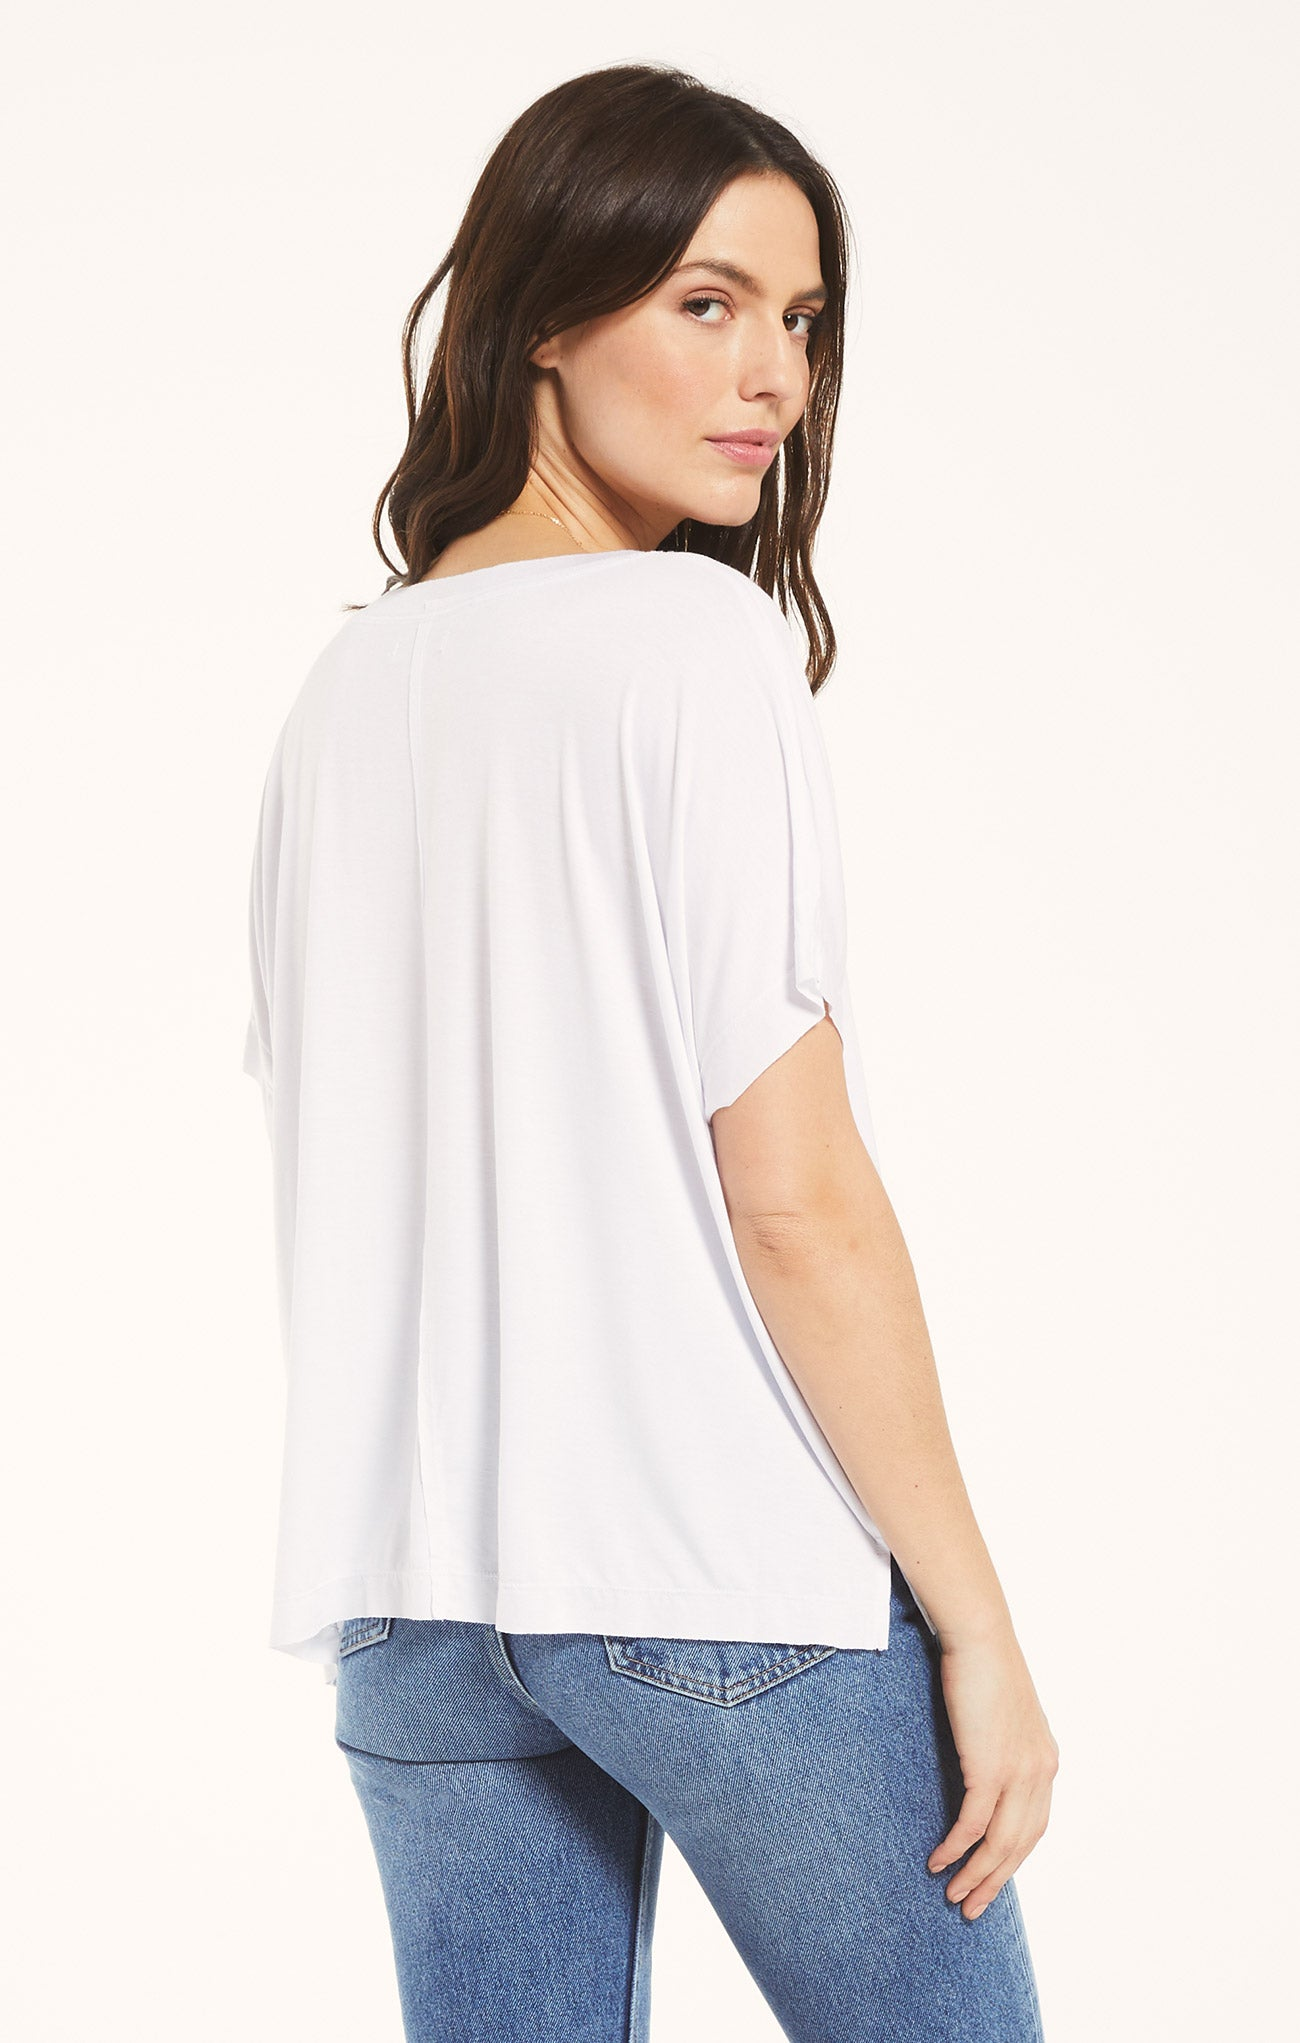 Tops Mischa Sleek V-Neck Tee White